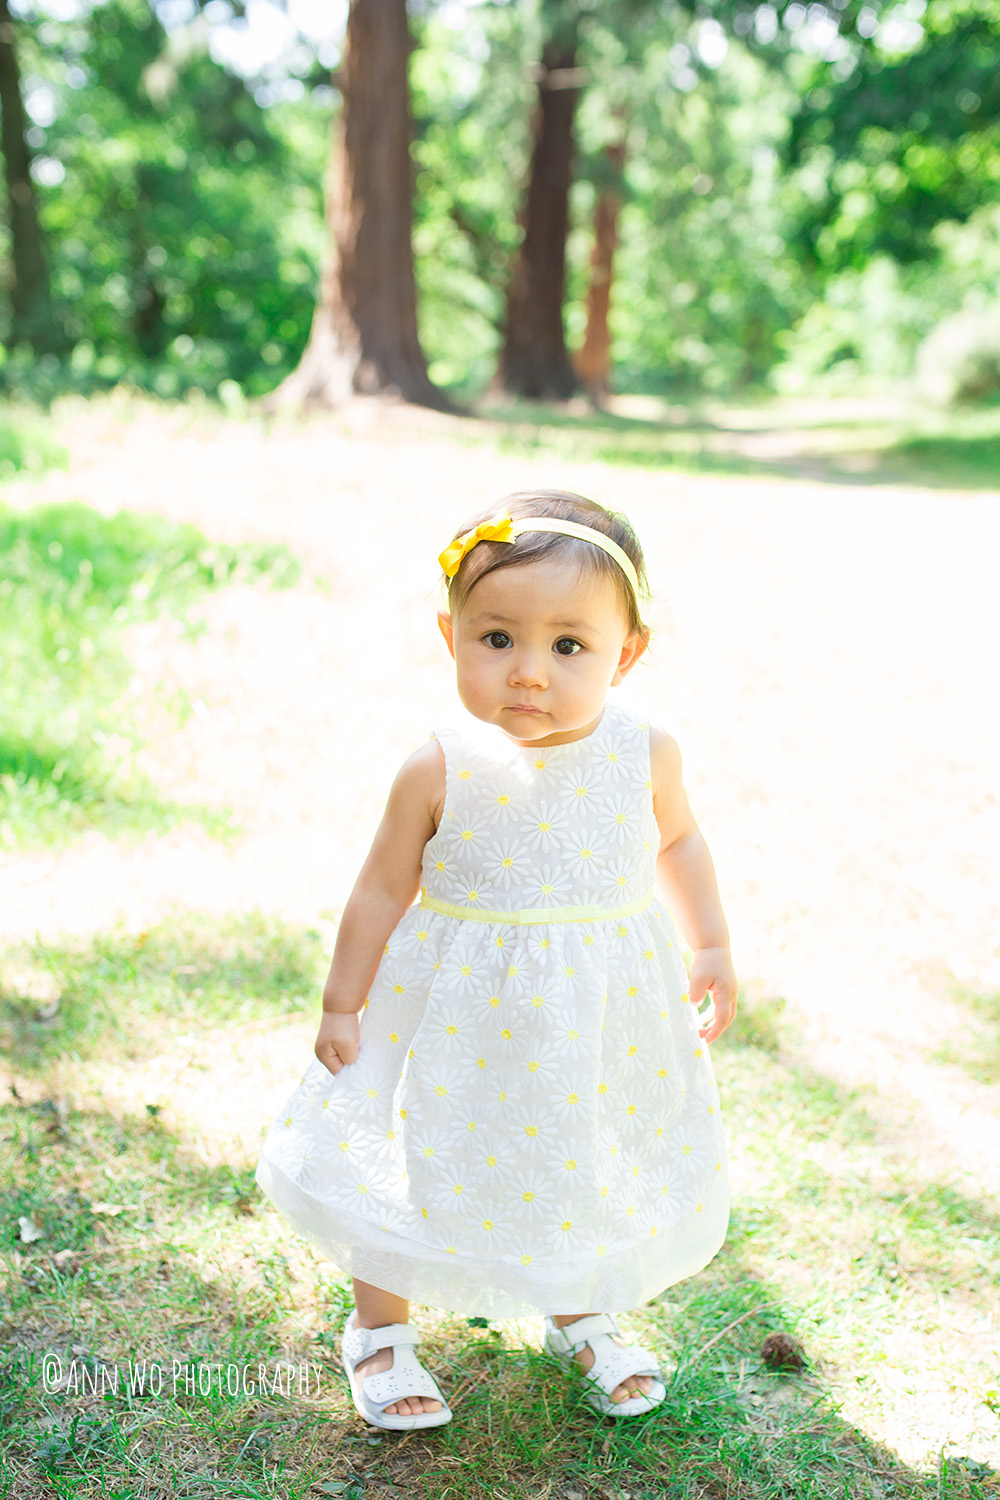 Lifestyle-Family-Photo-Session-First-Year-Outdoor-Cake-Smash-Baby-Girl-London-01.JPG